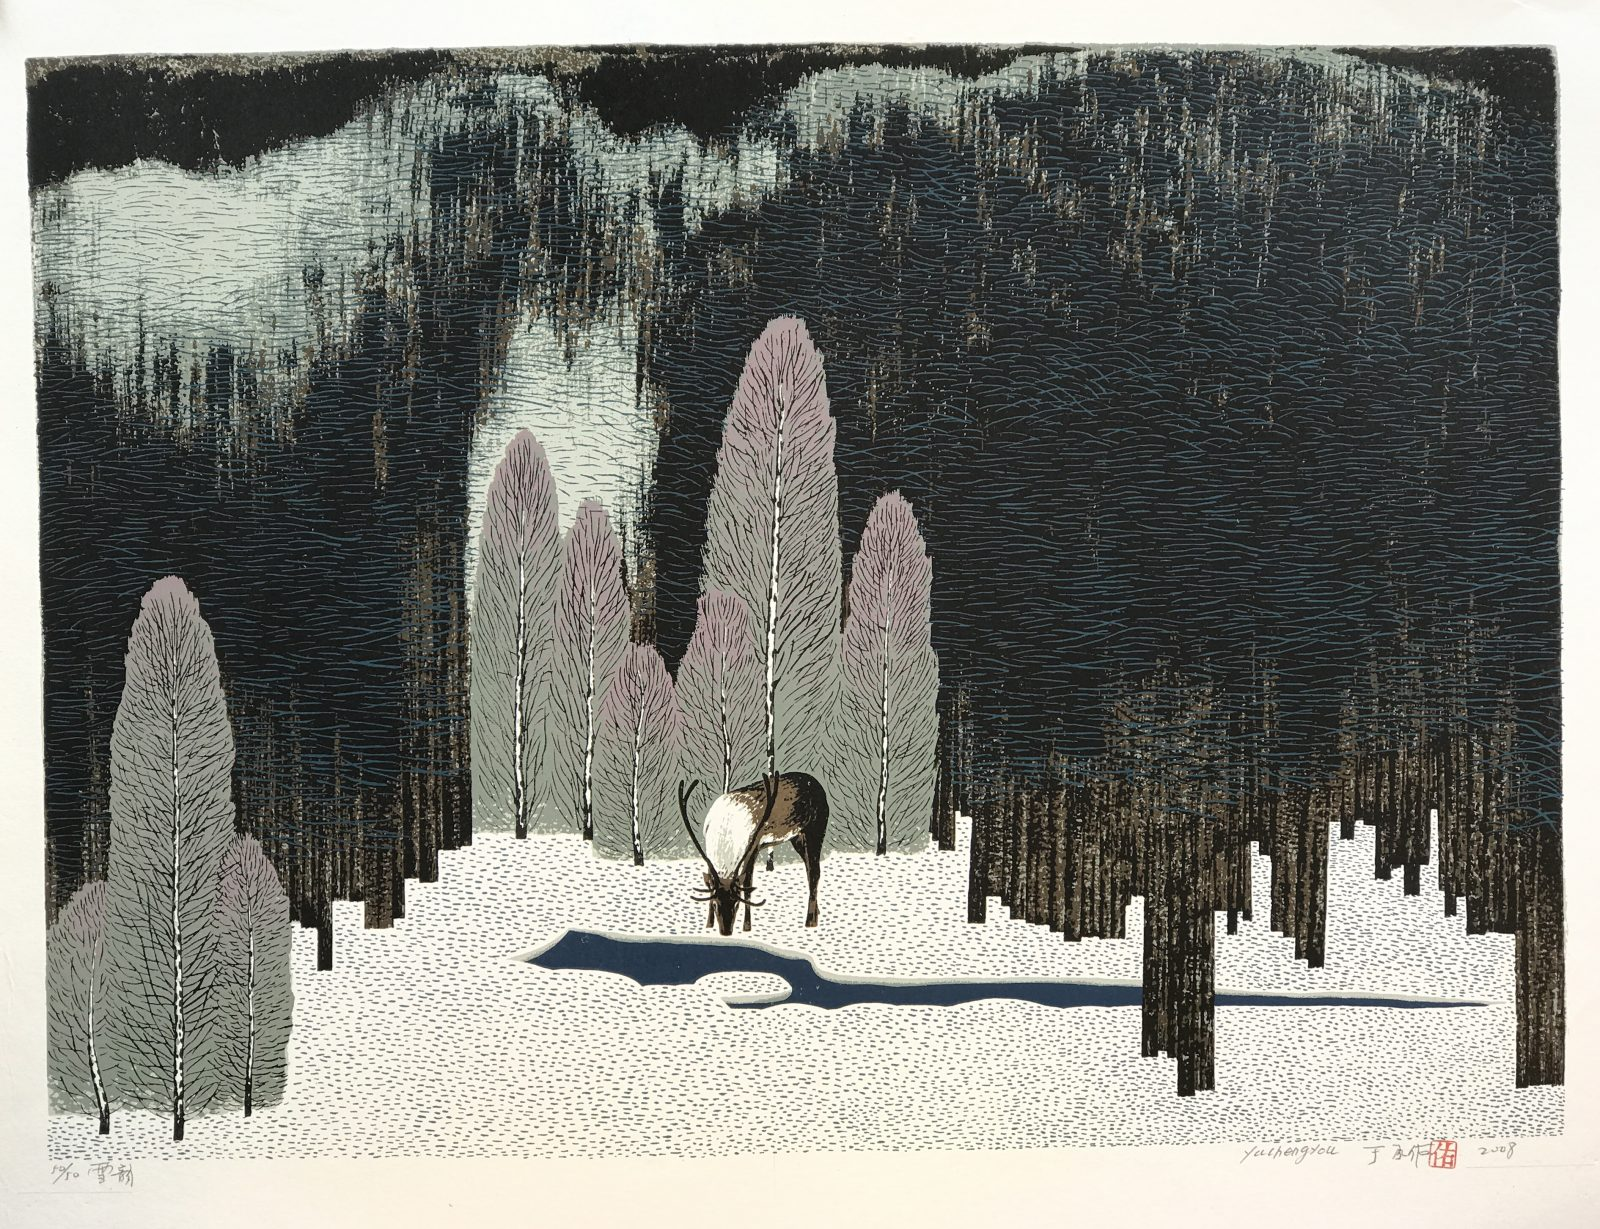 Metrical Snowy Forest 50:50